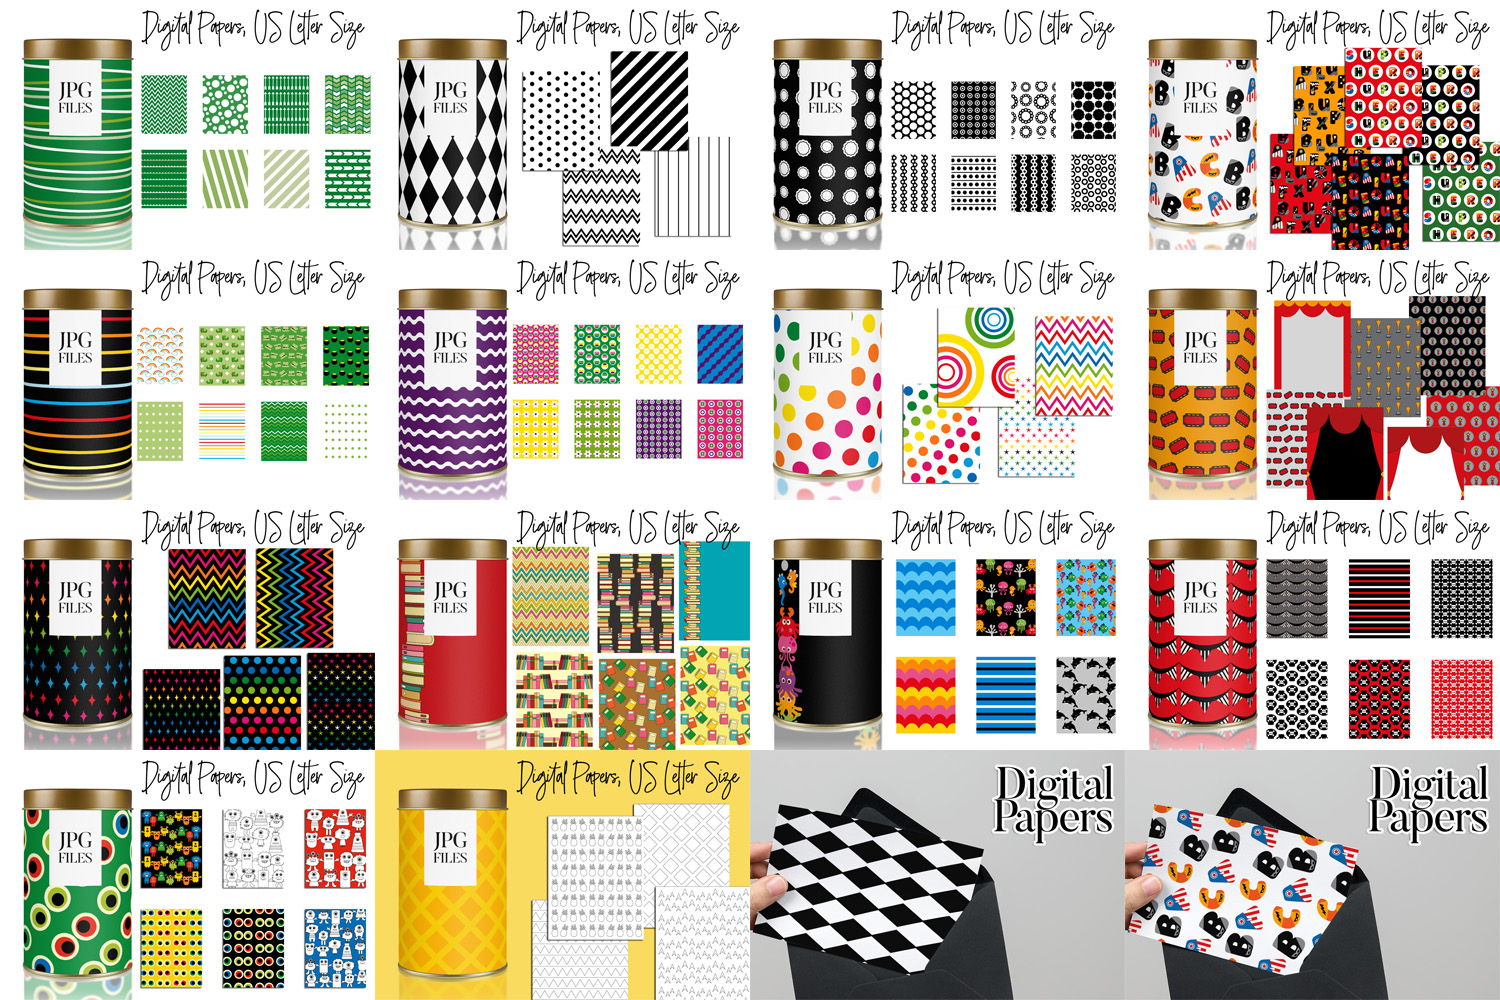 Digital Papers Bundle Vol. 2 - Background Patterns example image 2